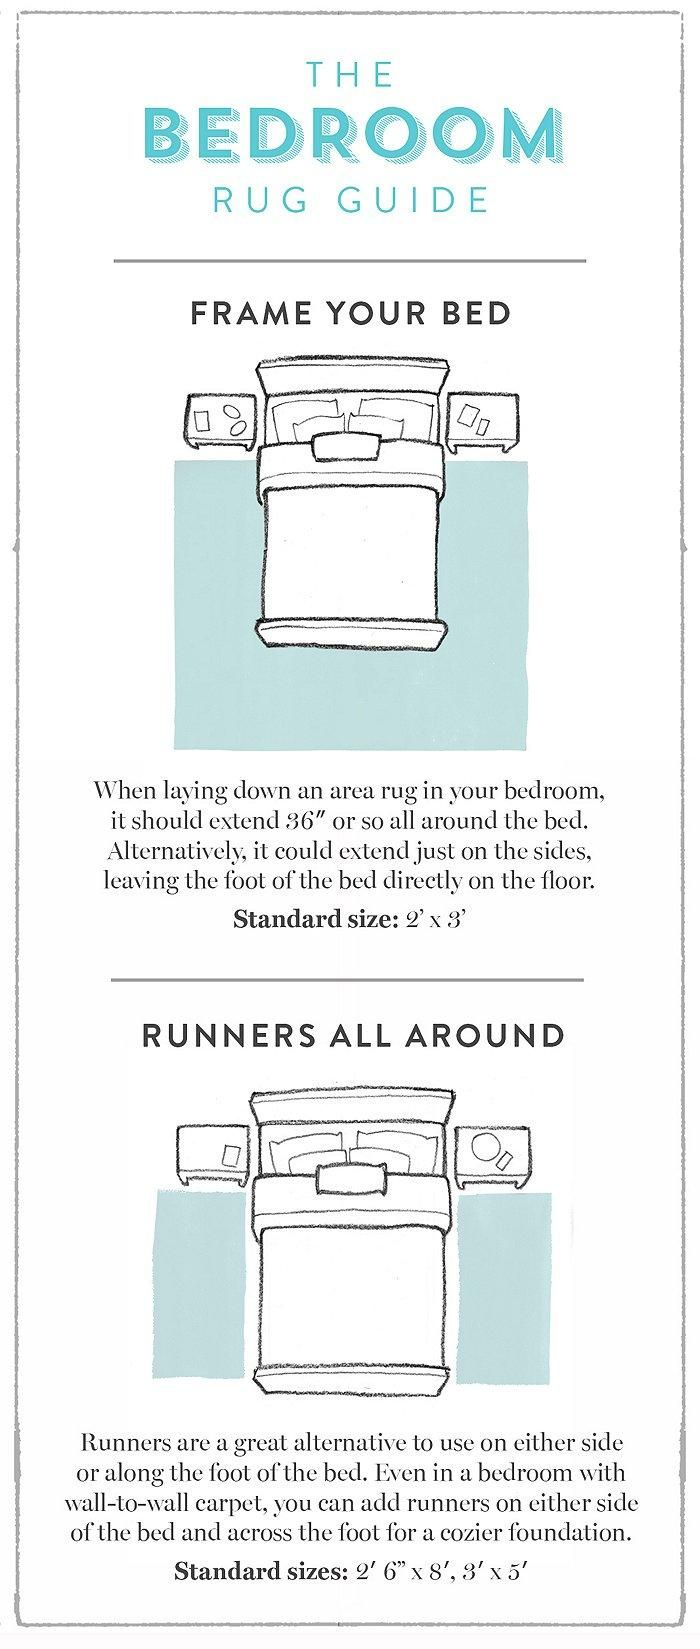 Rug Guide: A Room-by-Room Guide to Rug Sizes!